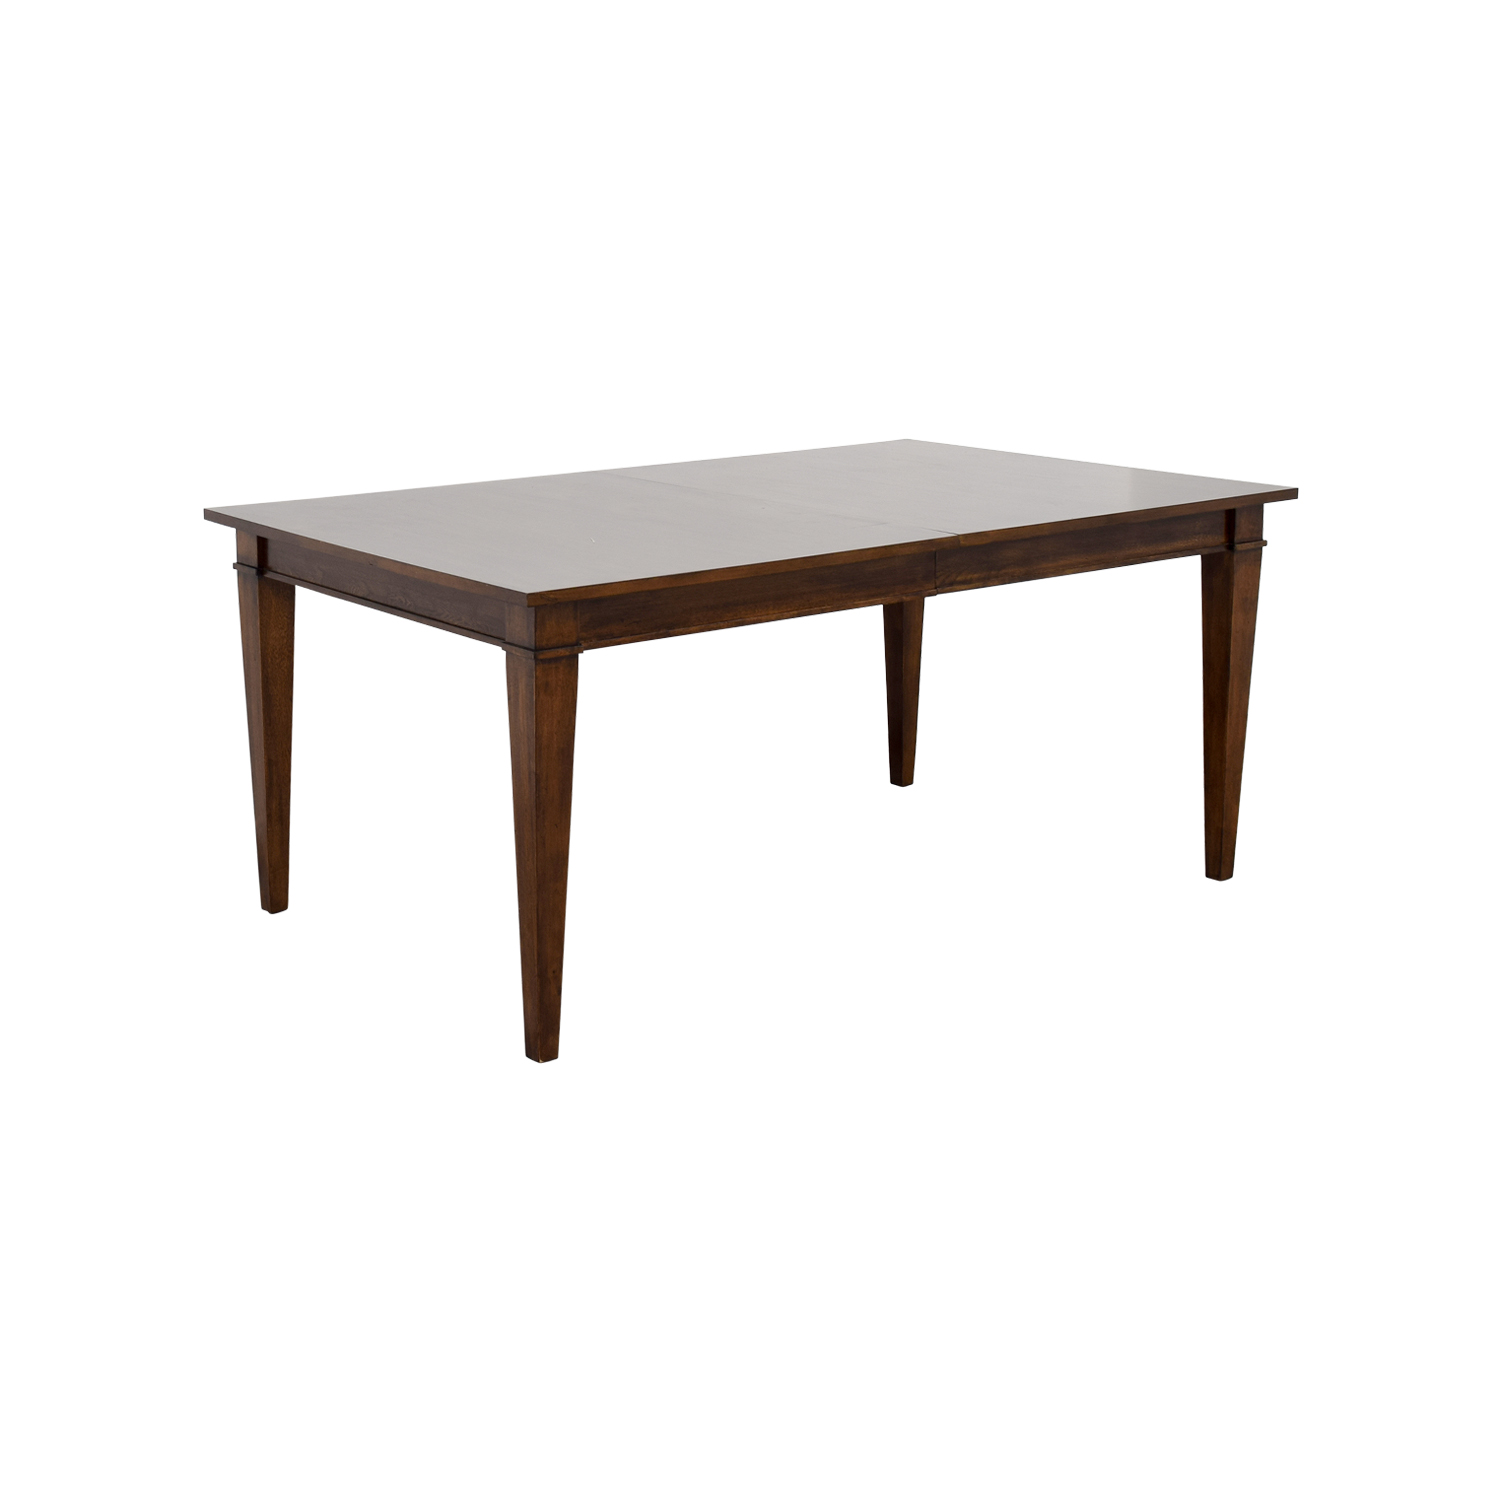 63 off ethan allen ethan allen dining table tables - Ethan allen kitchen tables ...